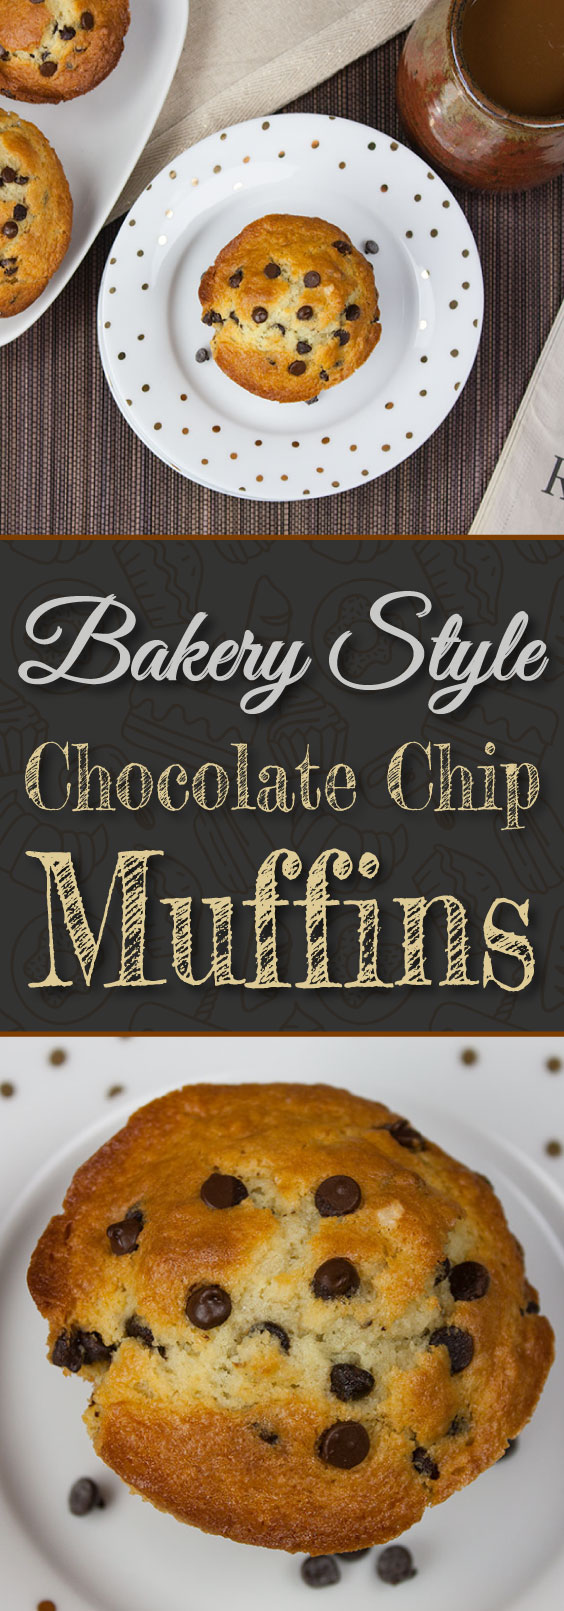 Bakery Style Chocolate Chip Muffins - Slightly crispy edges, fluffy, tender, moist and so tasty!